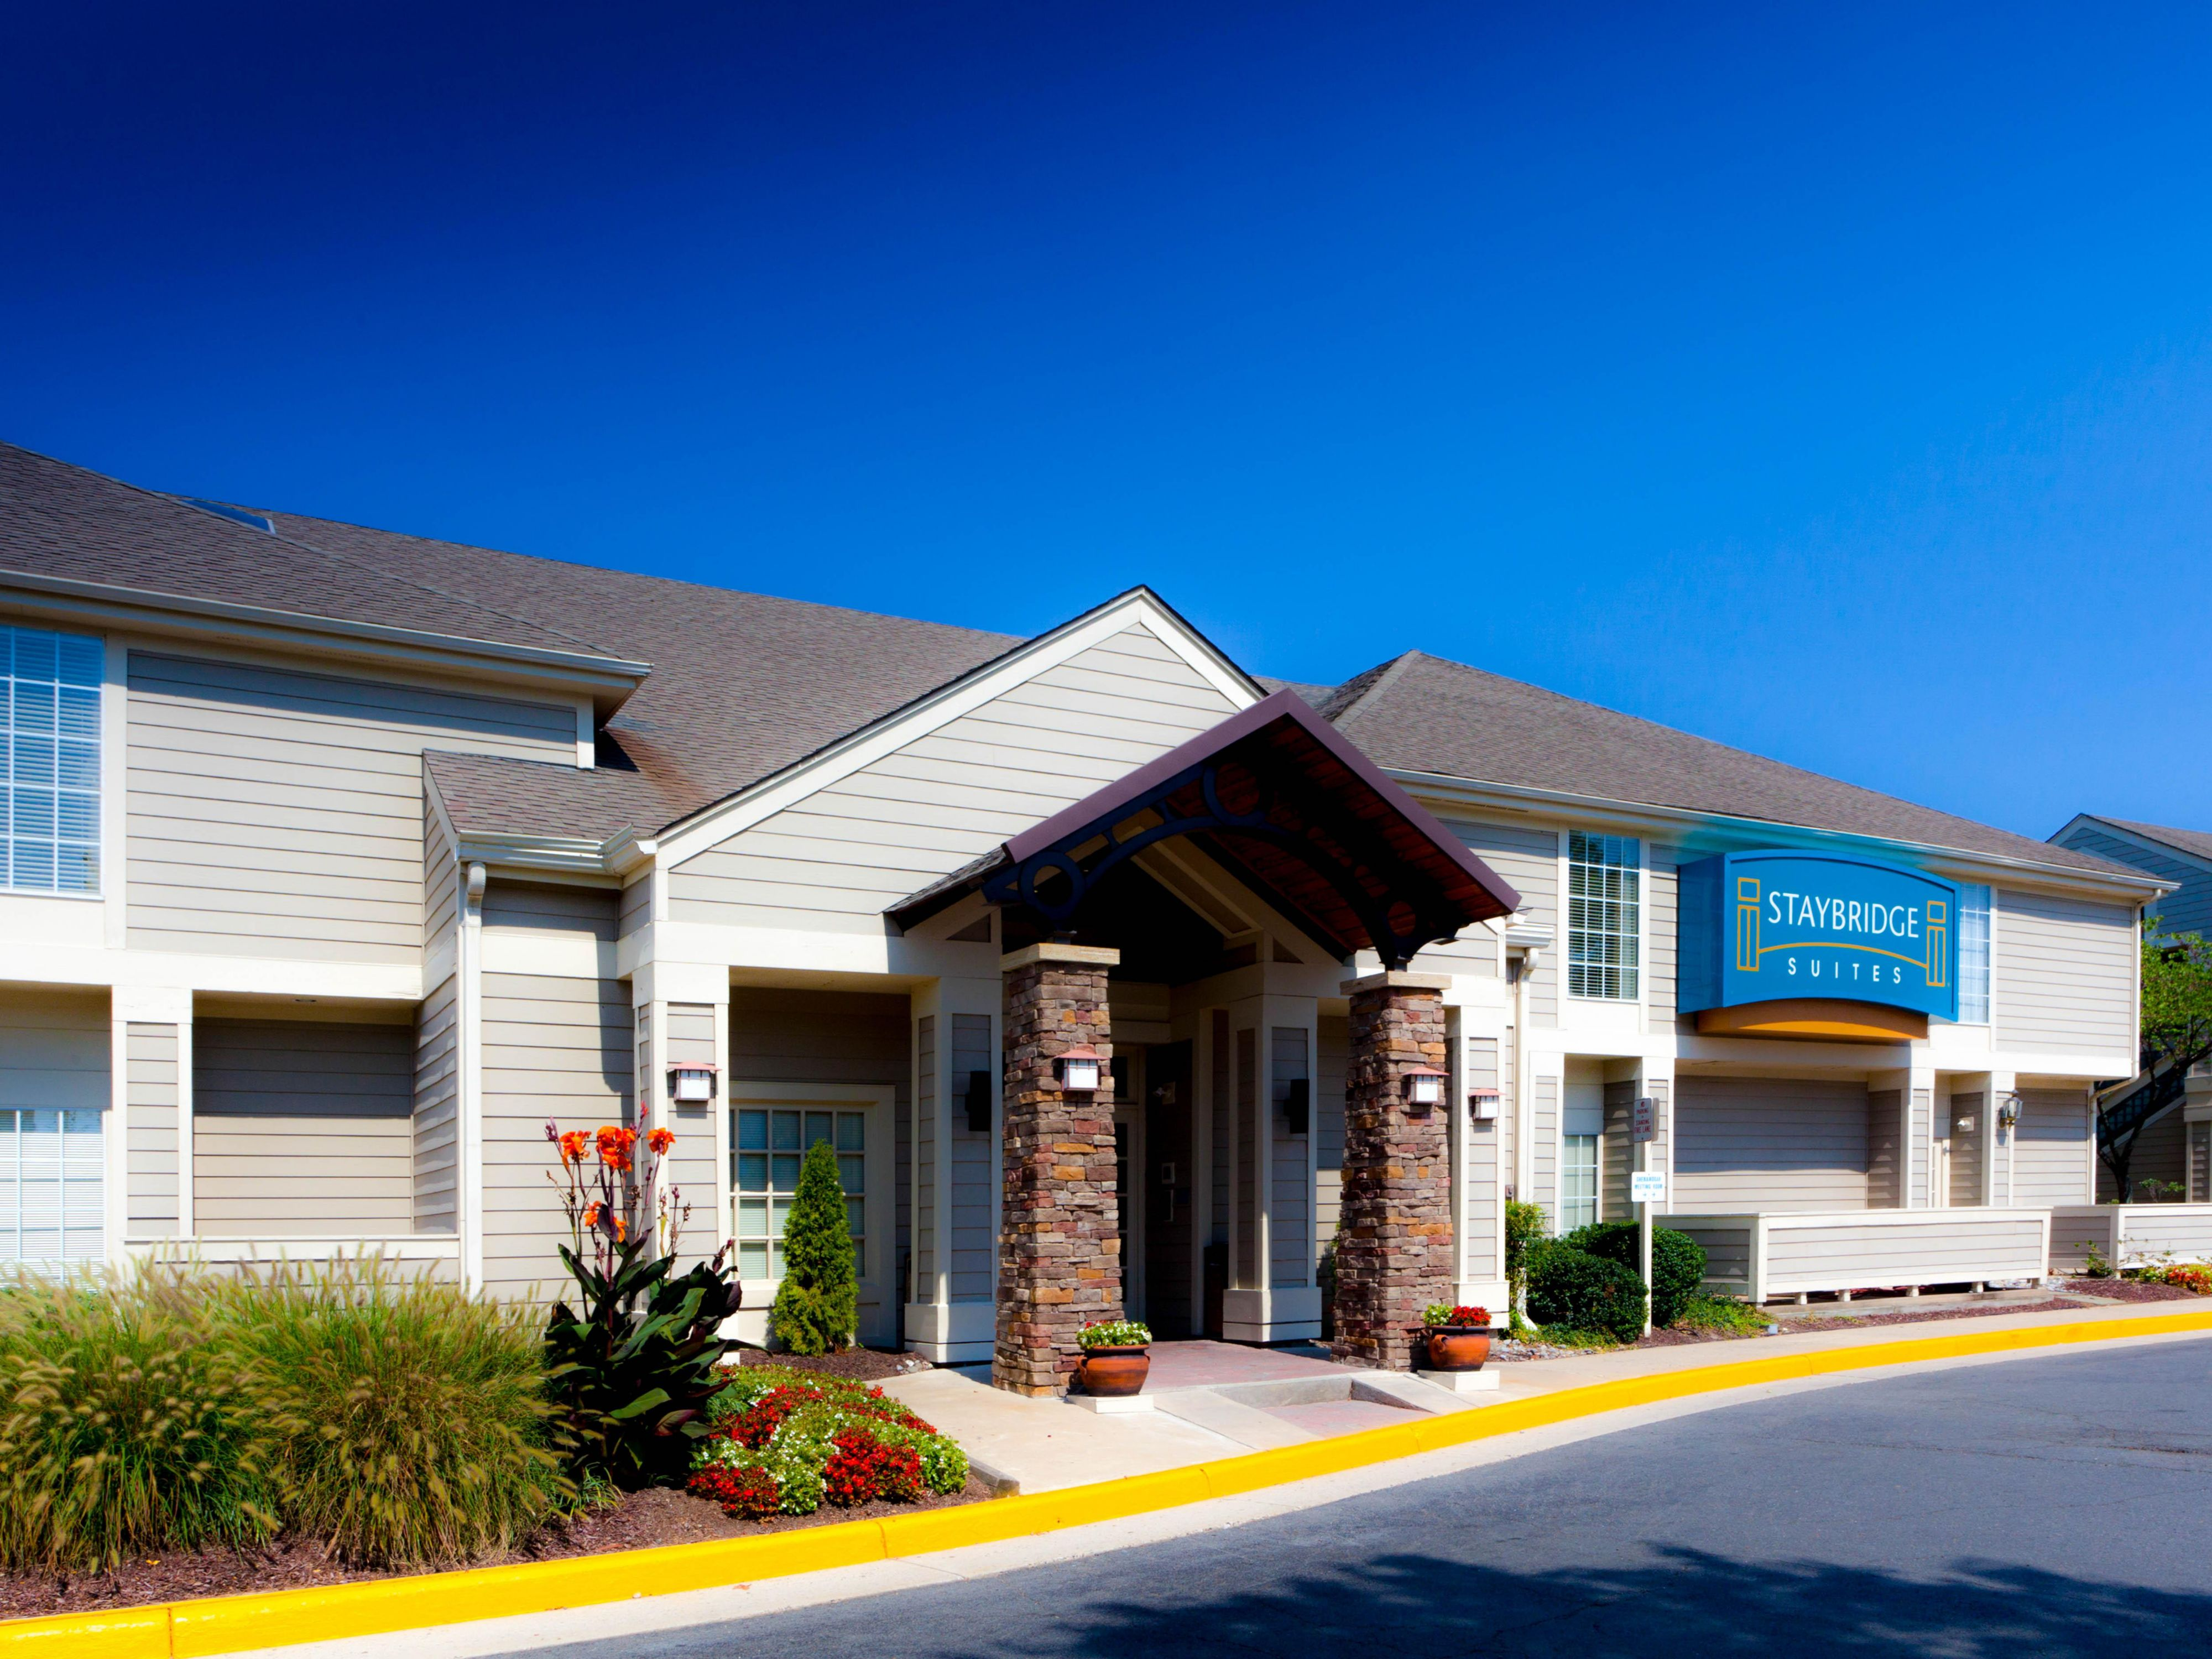 Herndon Hotels Staybridge Suites Dulles Extended Stay Hotel In Virginia